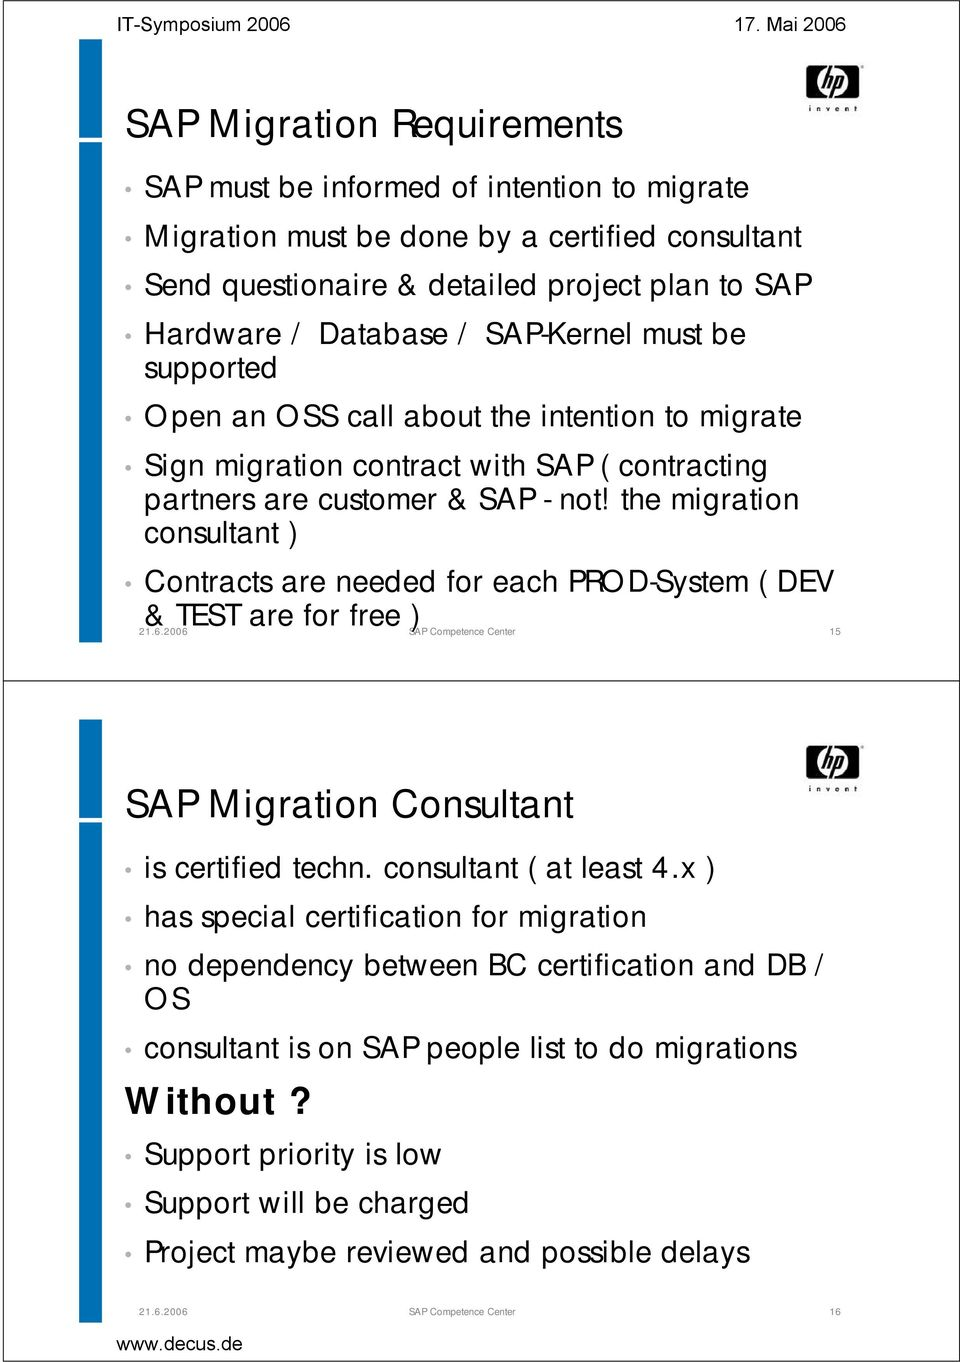 the migration consultant ) Contracts are needed for each PROD-System ( DEV & TEST are for free ) SAP Competence Center 15 SAP Migration Consultant is certified techn. consultant ( at least 4.